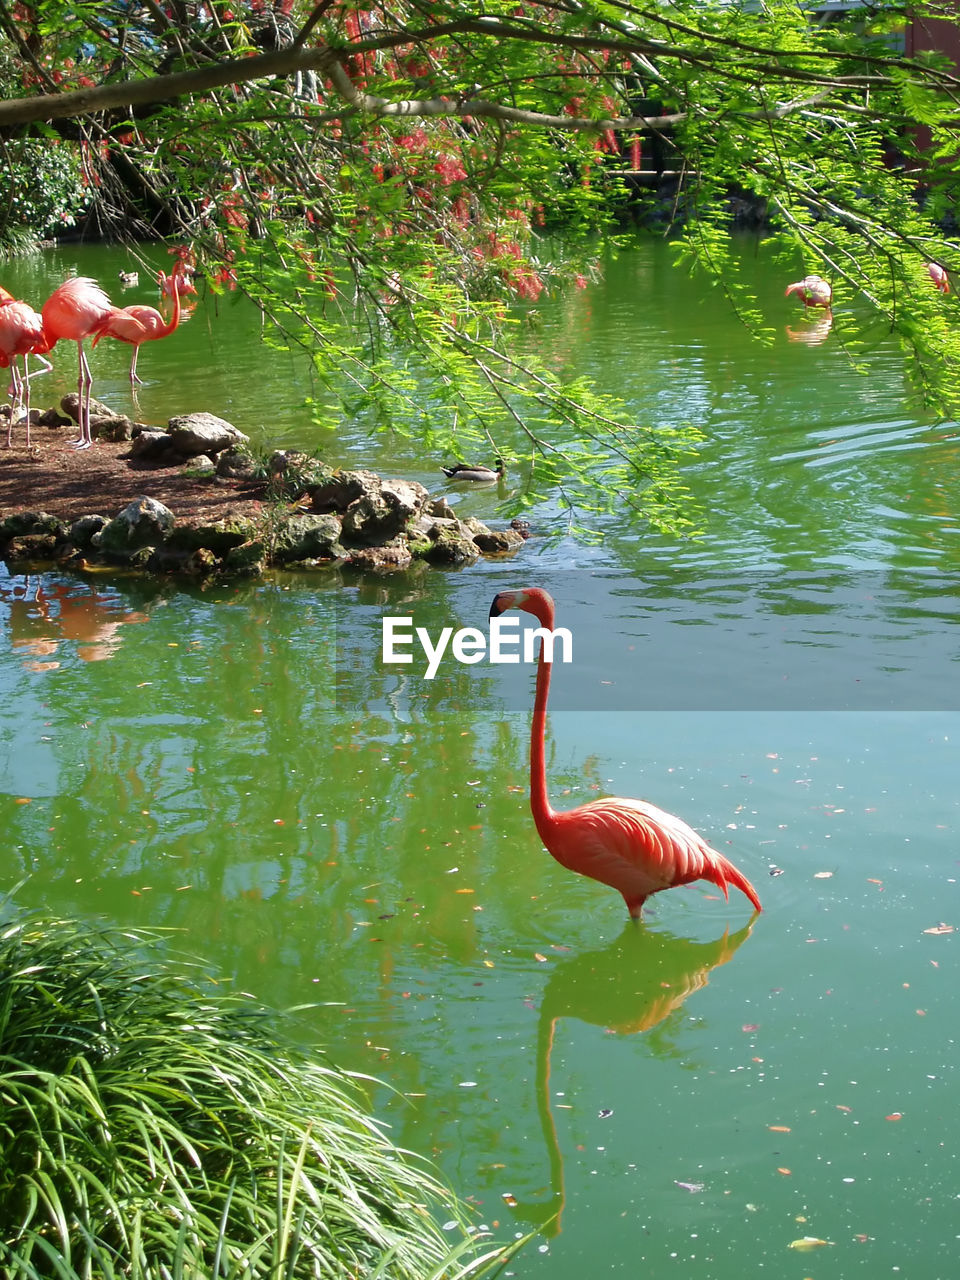 animal themes, animal, vertebrate, animals in the wild, animal wildlife, water, lake, plant, bird, one animal, nature, flamingo, reflection, day, no people, beauty in nature, animal neck, outdoors, floating on water